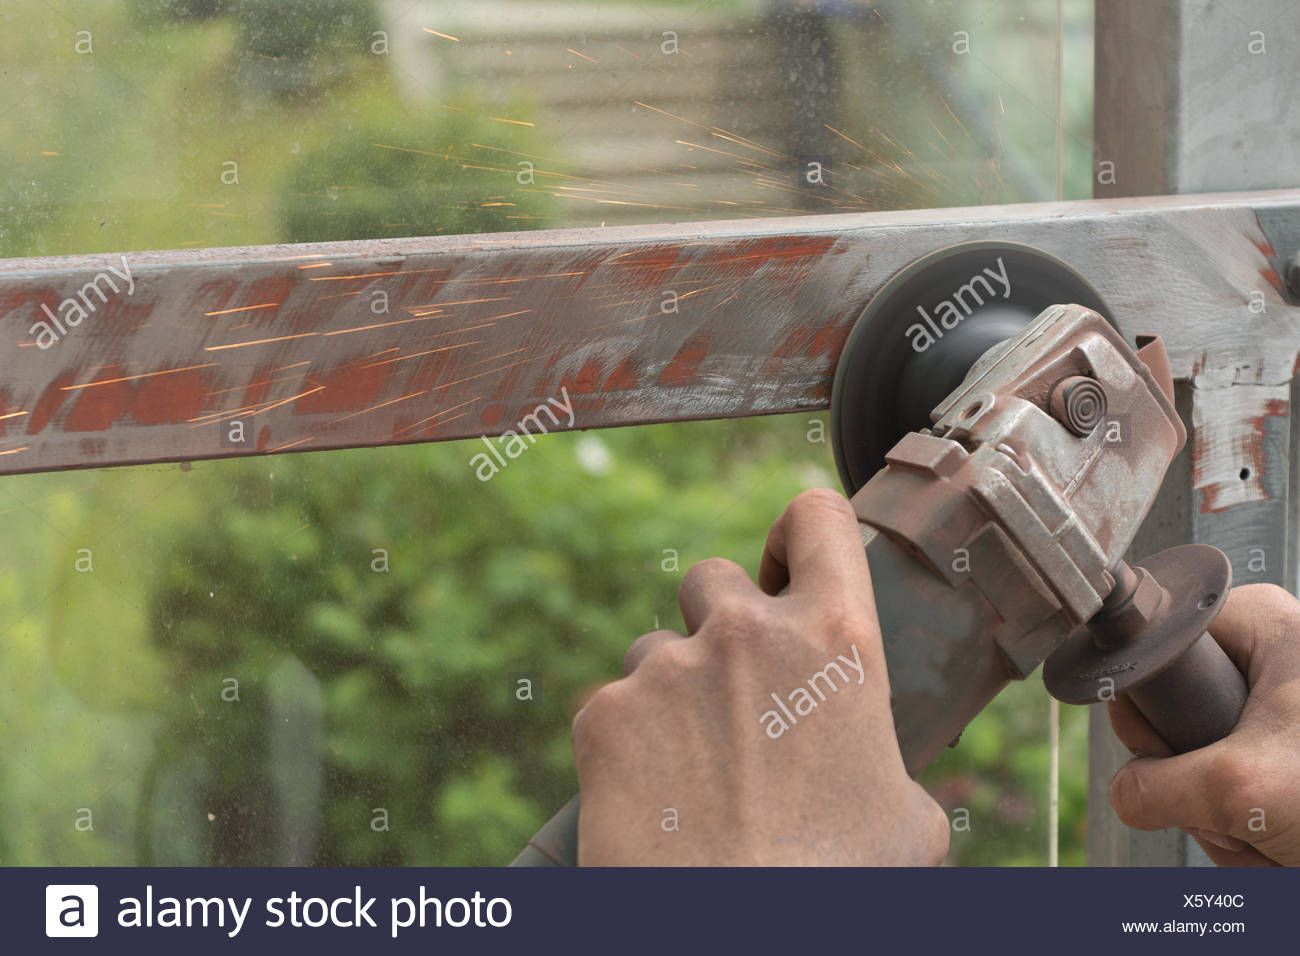 Metalworking with angle grinder - Stock Image